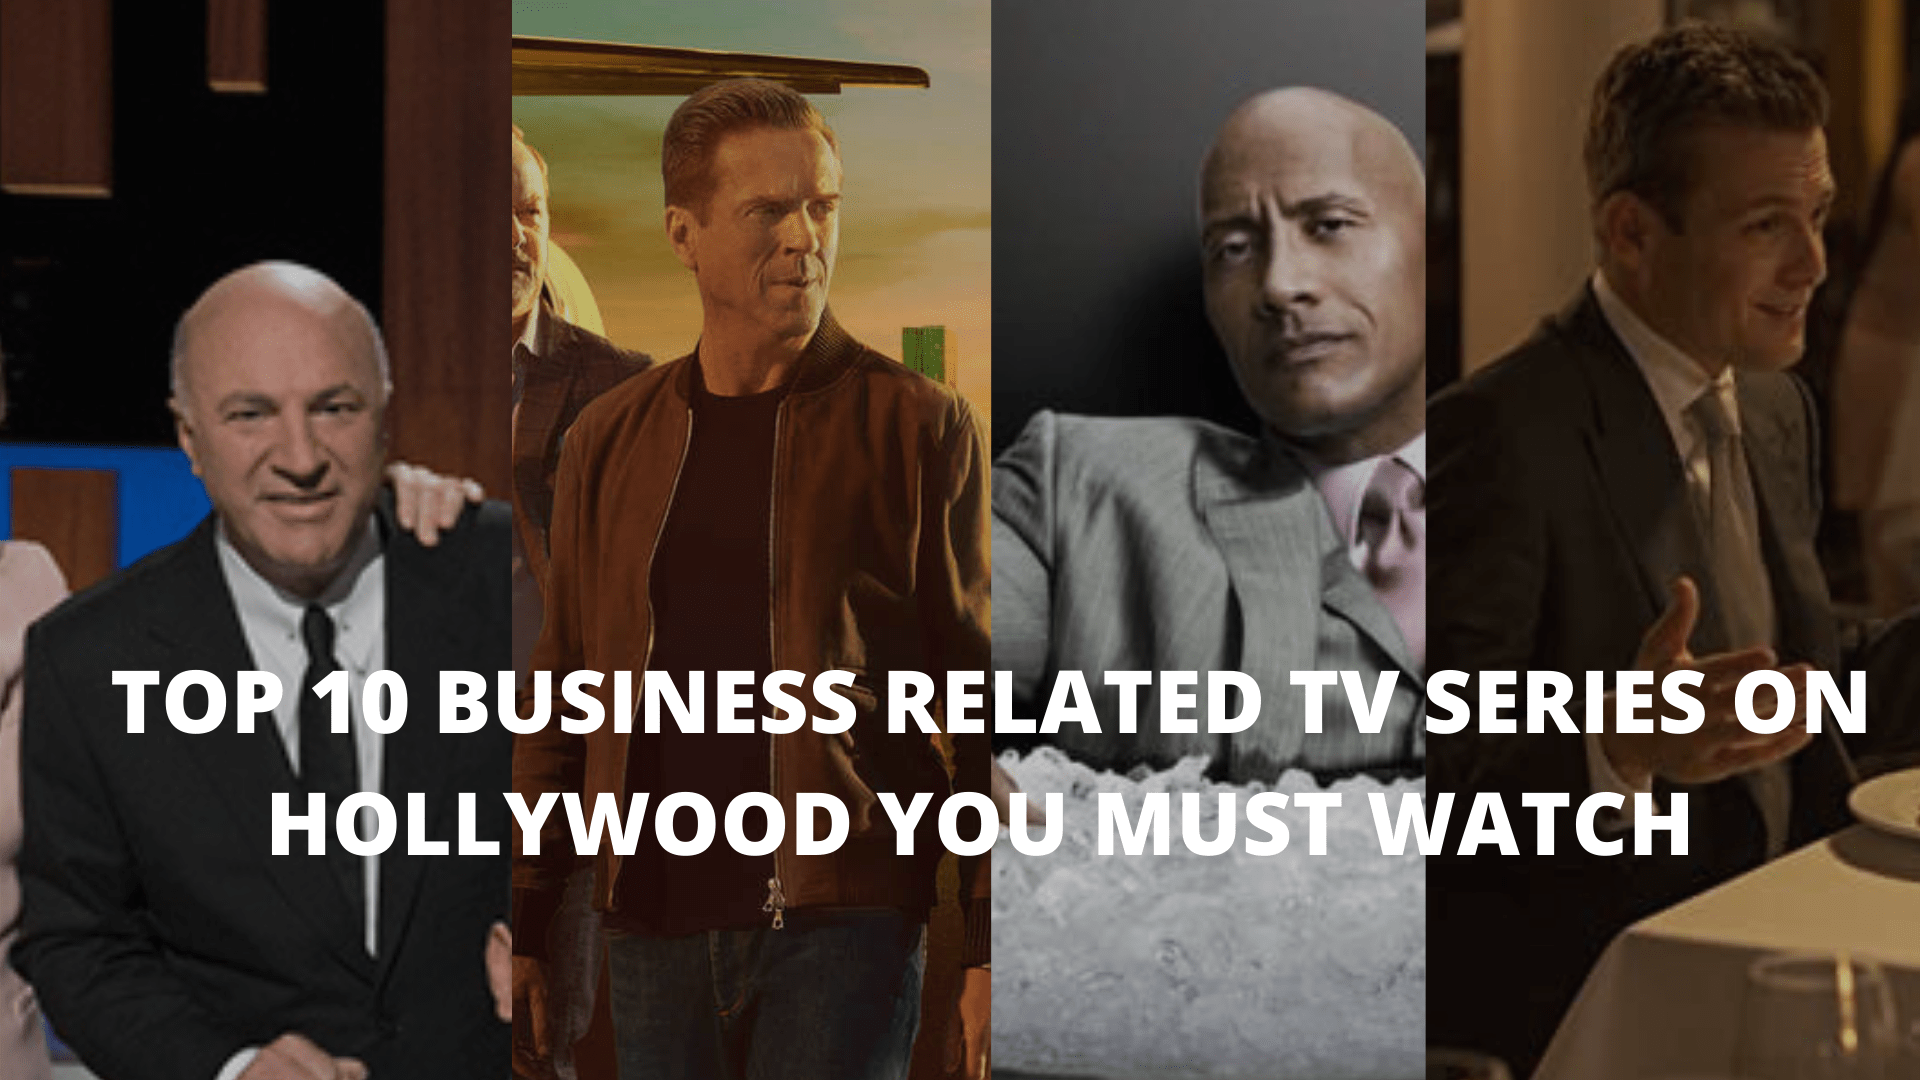 Top 10 Business related TV series on Hollywood You Must Watch